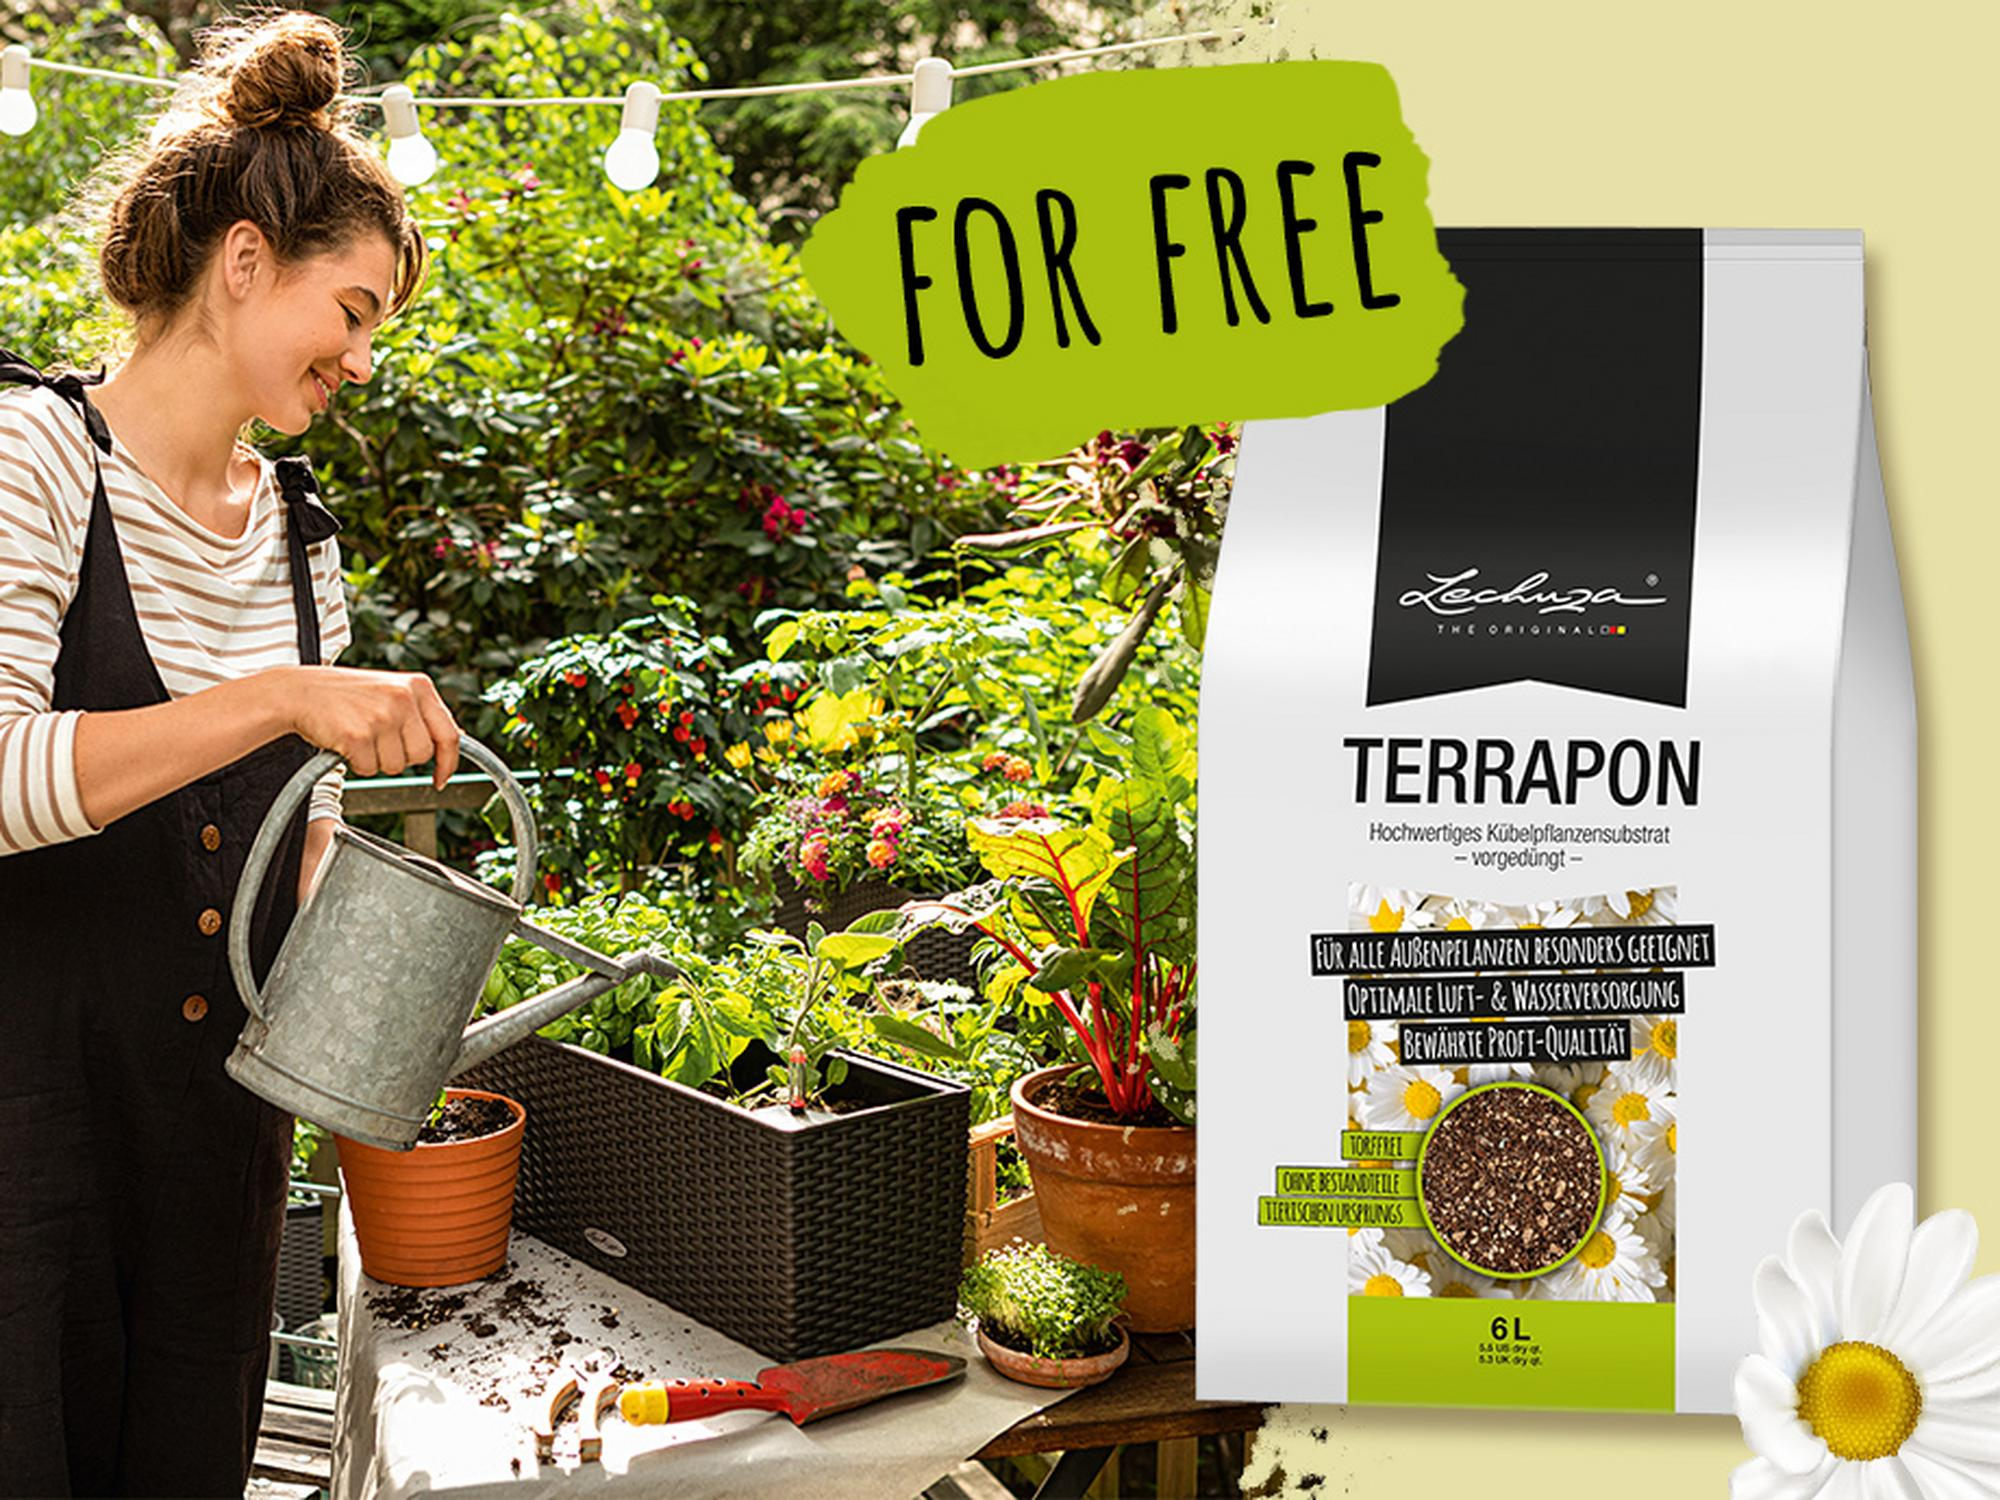 Get TERRAPON 6 l for free + free delivery